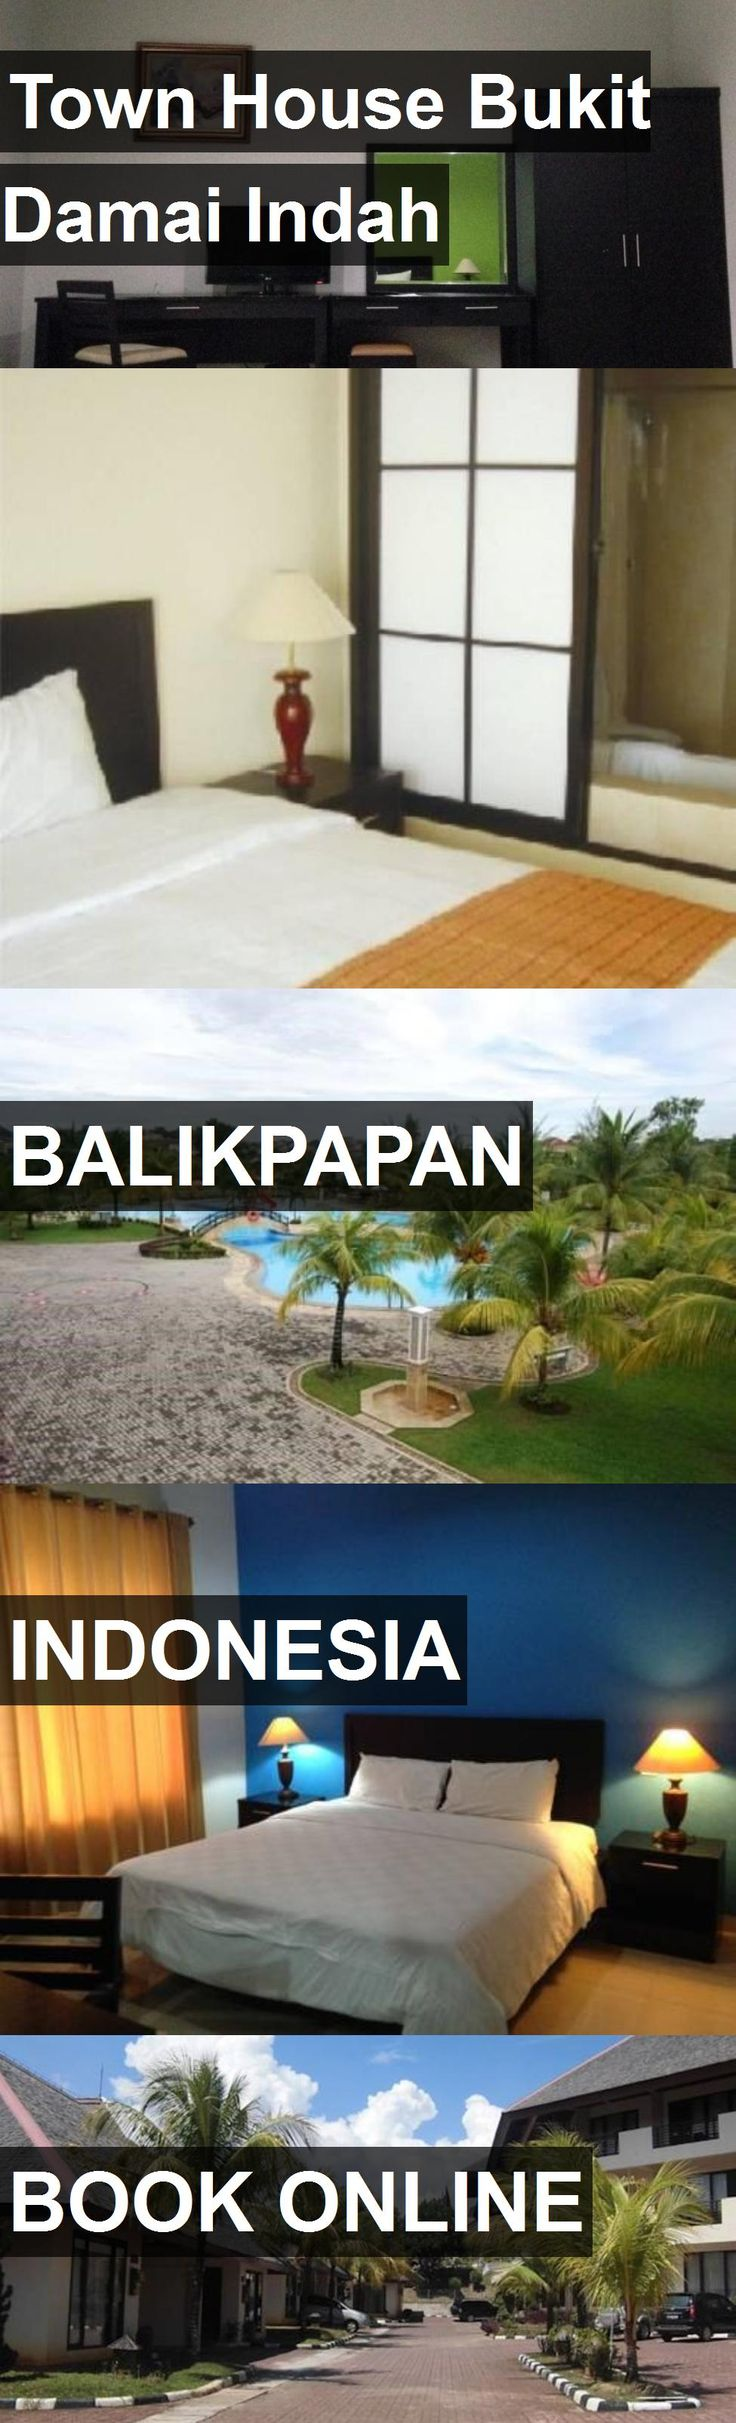 Hotel Town House Bukit Damai Indah in Balikpapan, Indonesia. For more information, photos, reviews and best prices please follow the link. #Indonesia #Balikpapan #TownHouseBukitDamaiIndah #hotel #travel #vacation